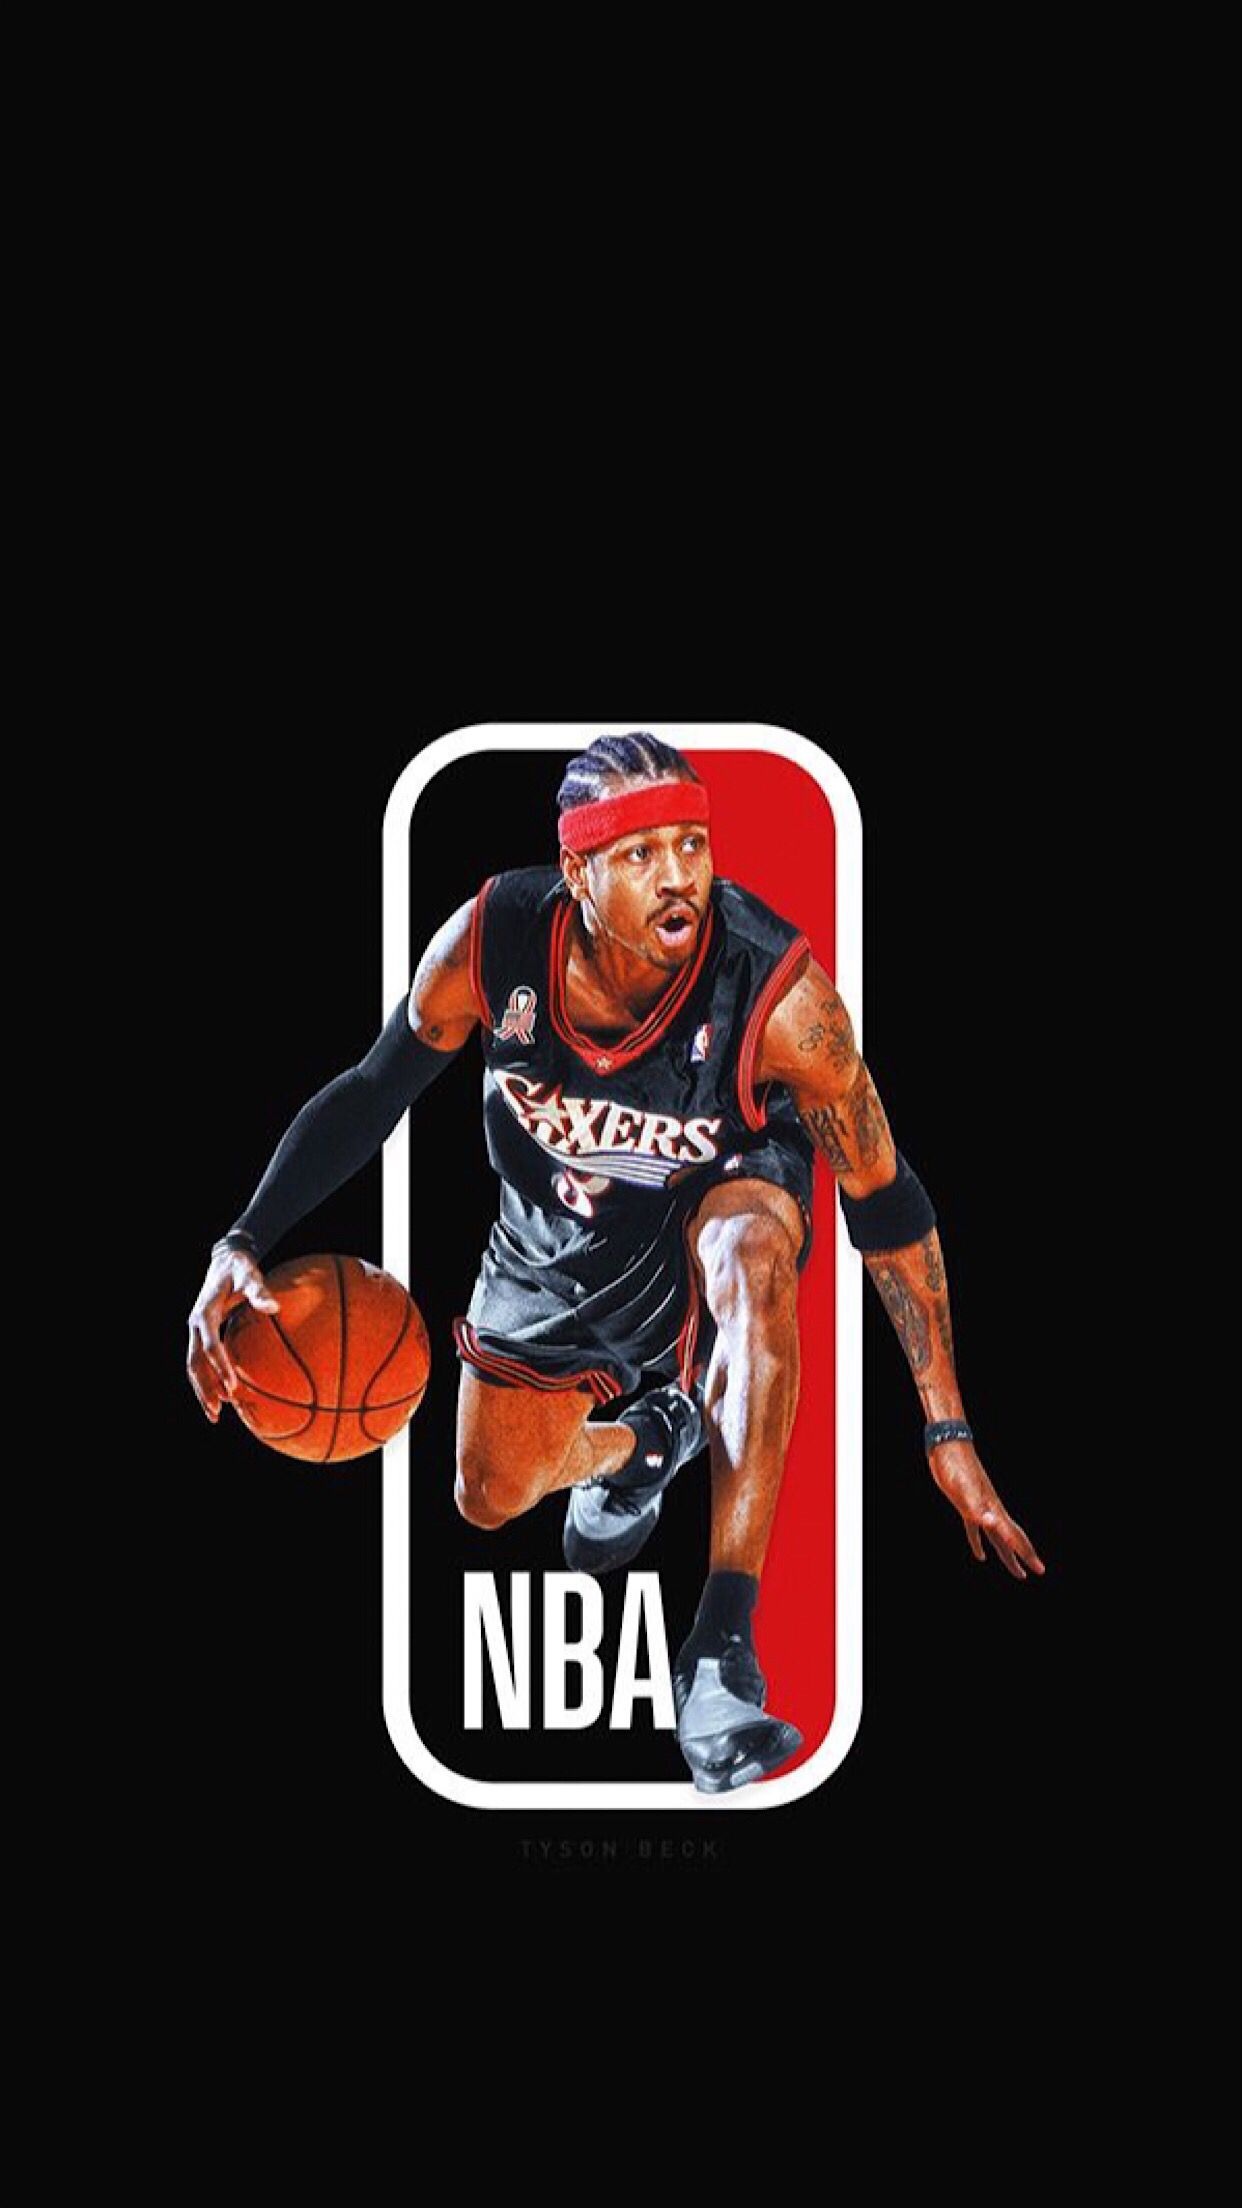 Wallpaper Nba Posted By Samantha Peltier